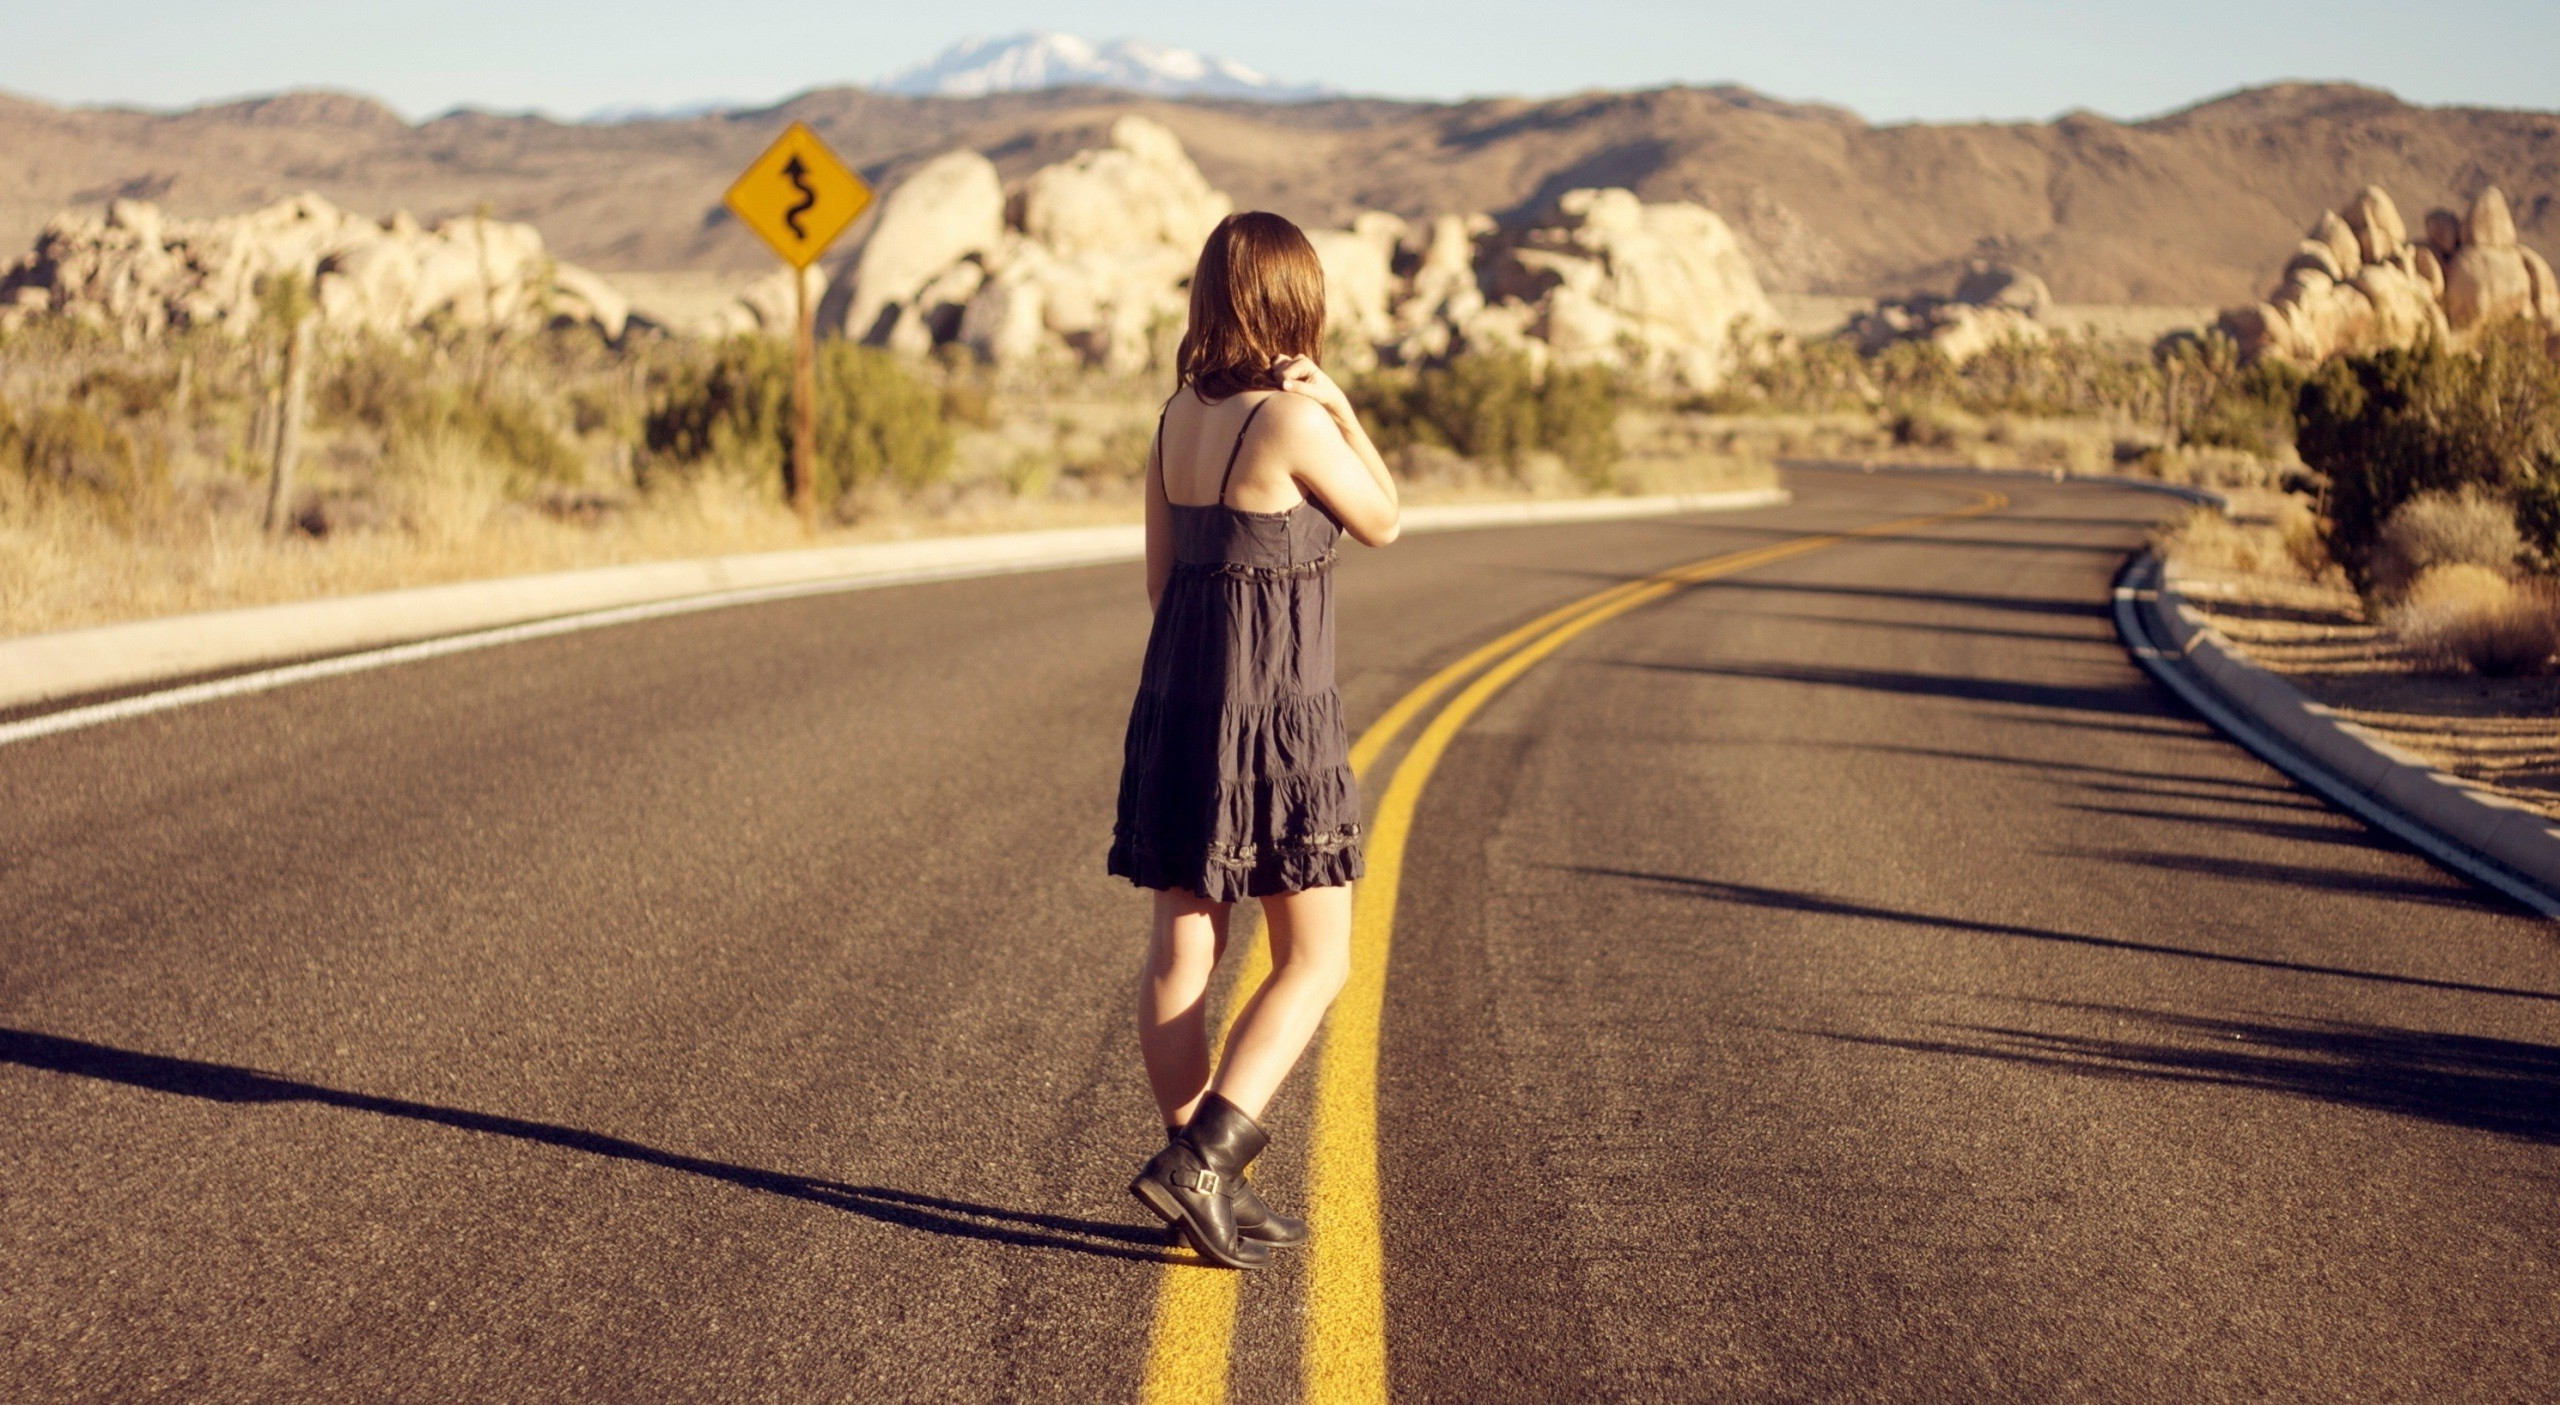 Alone Quotes Wallpaper Free Download Women Alone Road Wallpapers Hd Desktop And Mobile